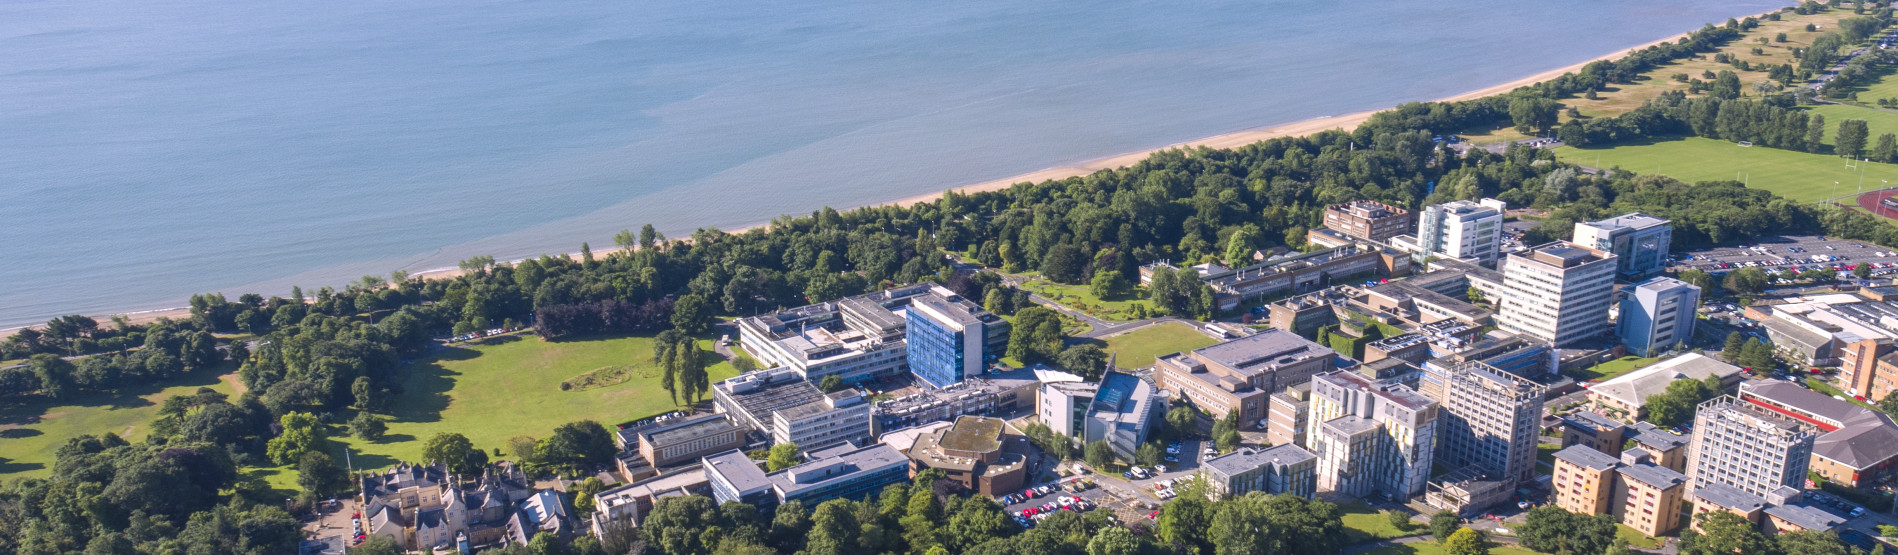 Swansea University aerial picture